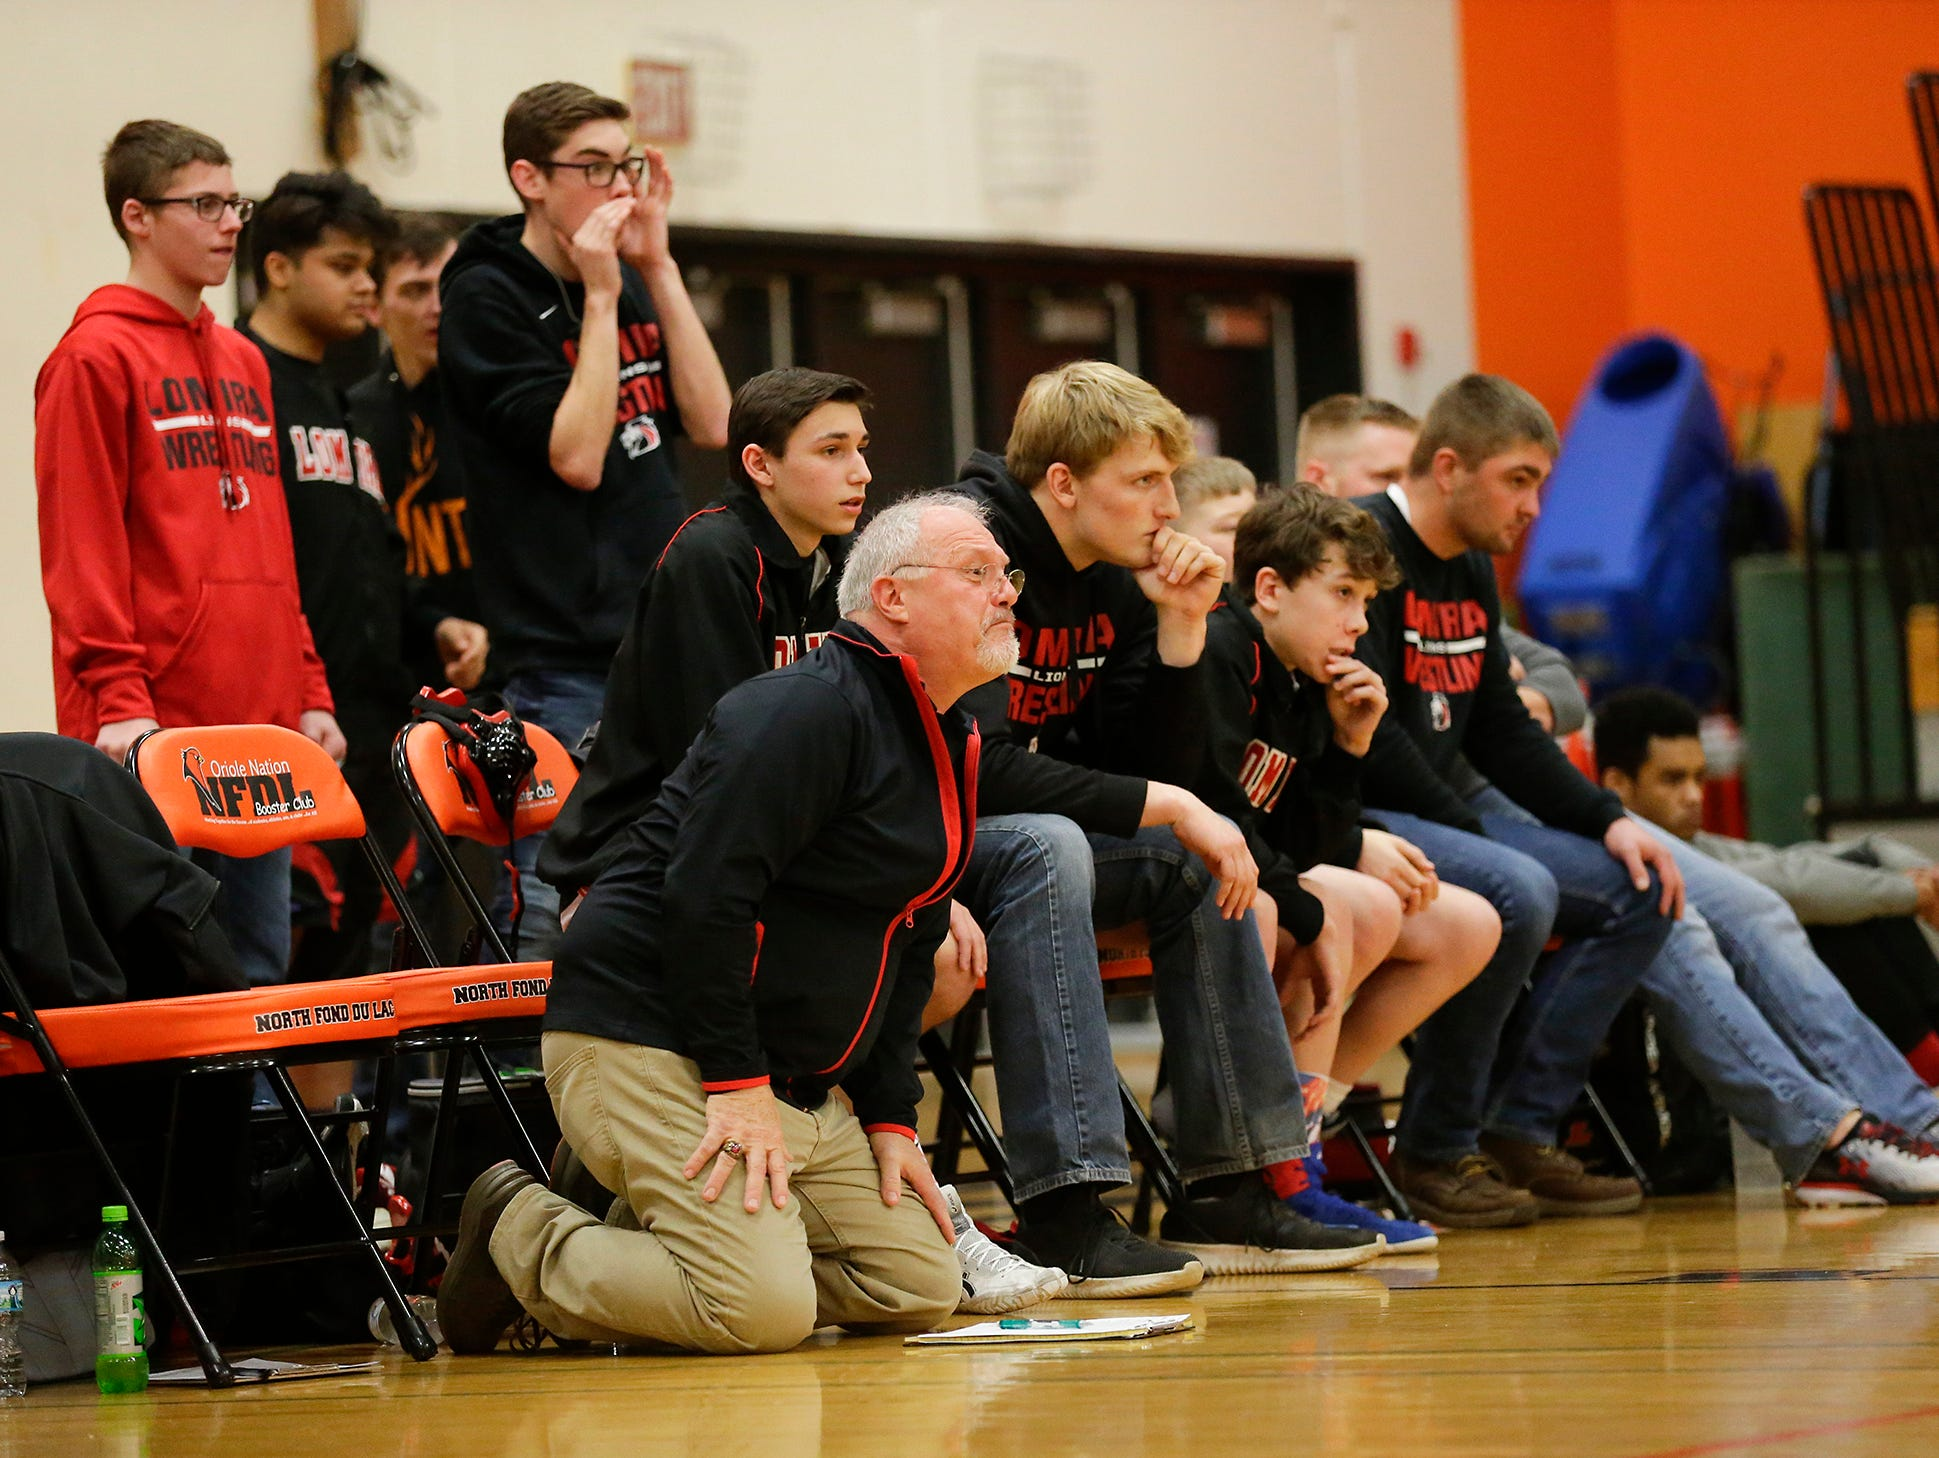 "Lomira High School coaches and wrestlers watch as St. Mary's Springs Academy/North Fond du Lac High School wrestling""s Carson Reitz wrestles against Lomira High School's Hunter Feucht during their 170 pound weight class match in North Fond du Lac. Reitz won the match by a pin and Springs/North Fond du Lac won the meet 48-28. Doug Raflik/USA TODAY NETWORK-Wisconsin"